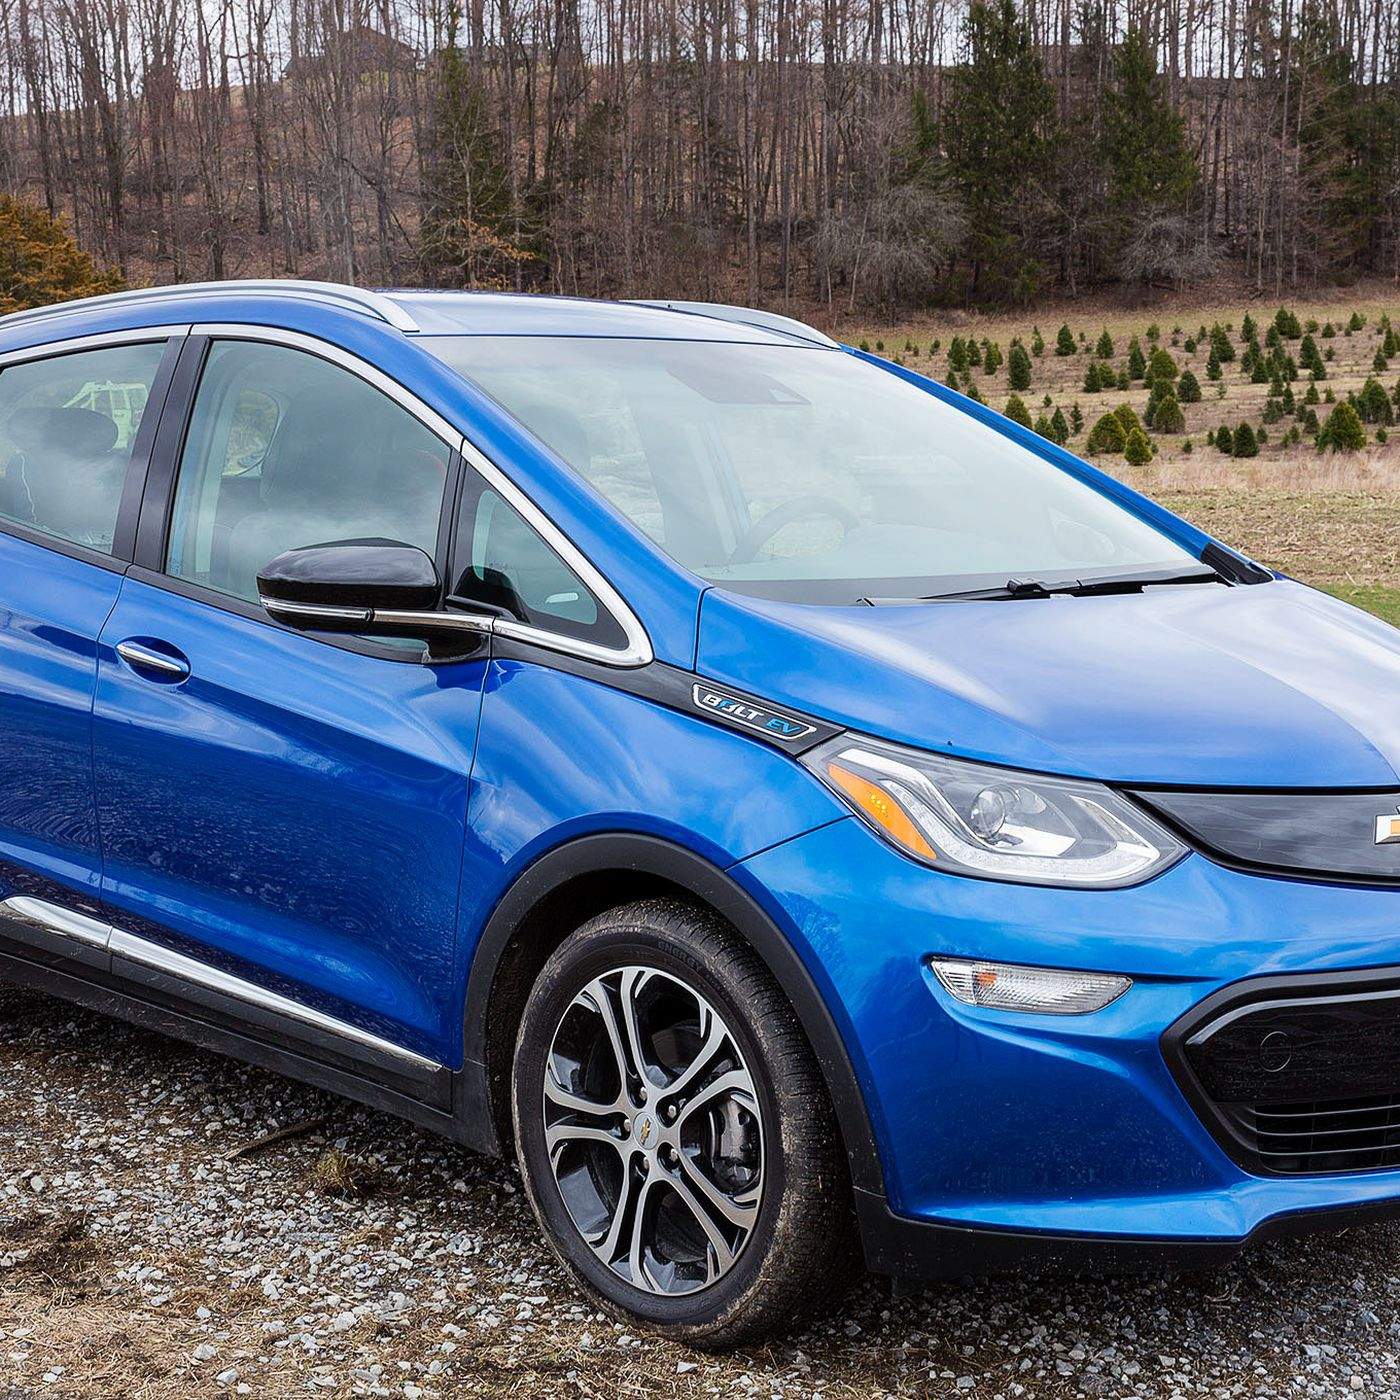 The New Chevy Bolt Gained 21 Miles Of Range Thanks To A Battery Chemistry Tweak The Verge